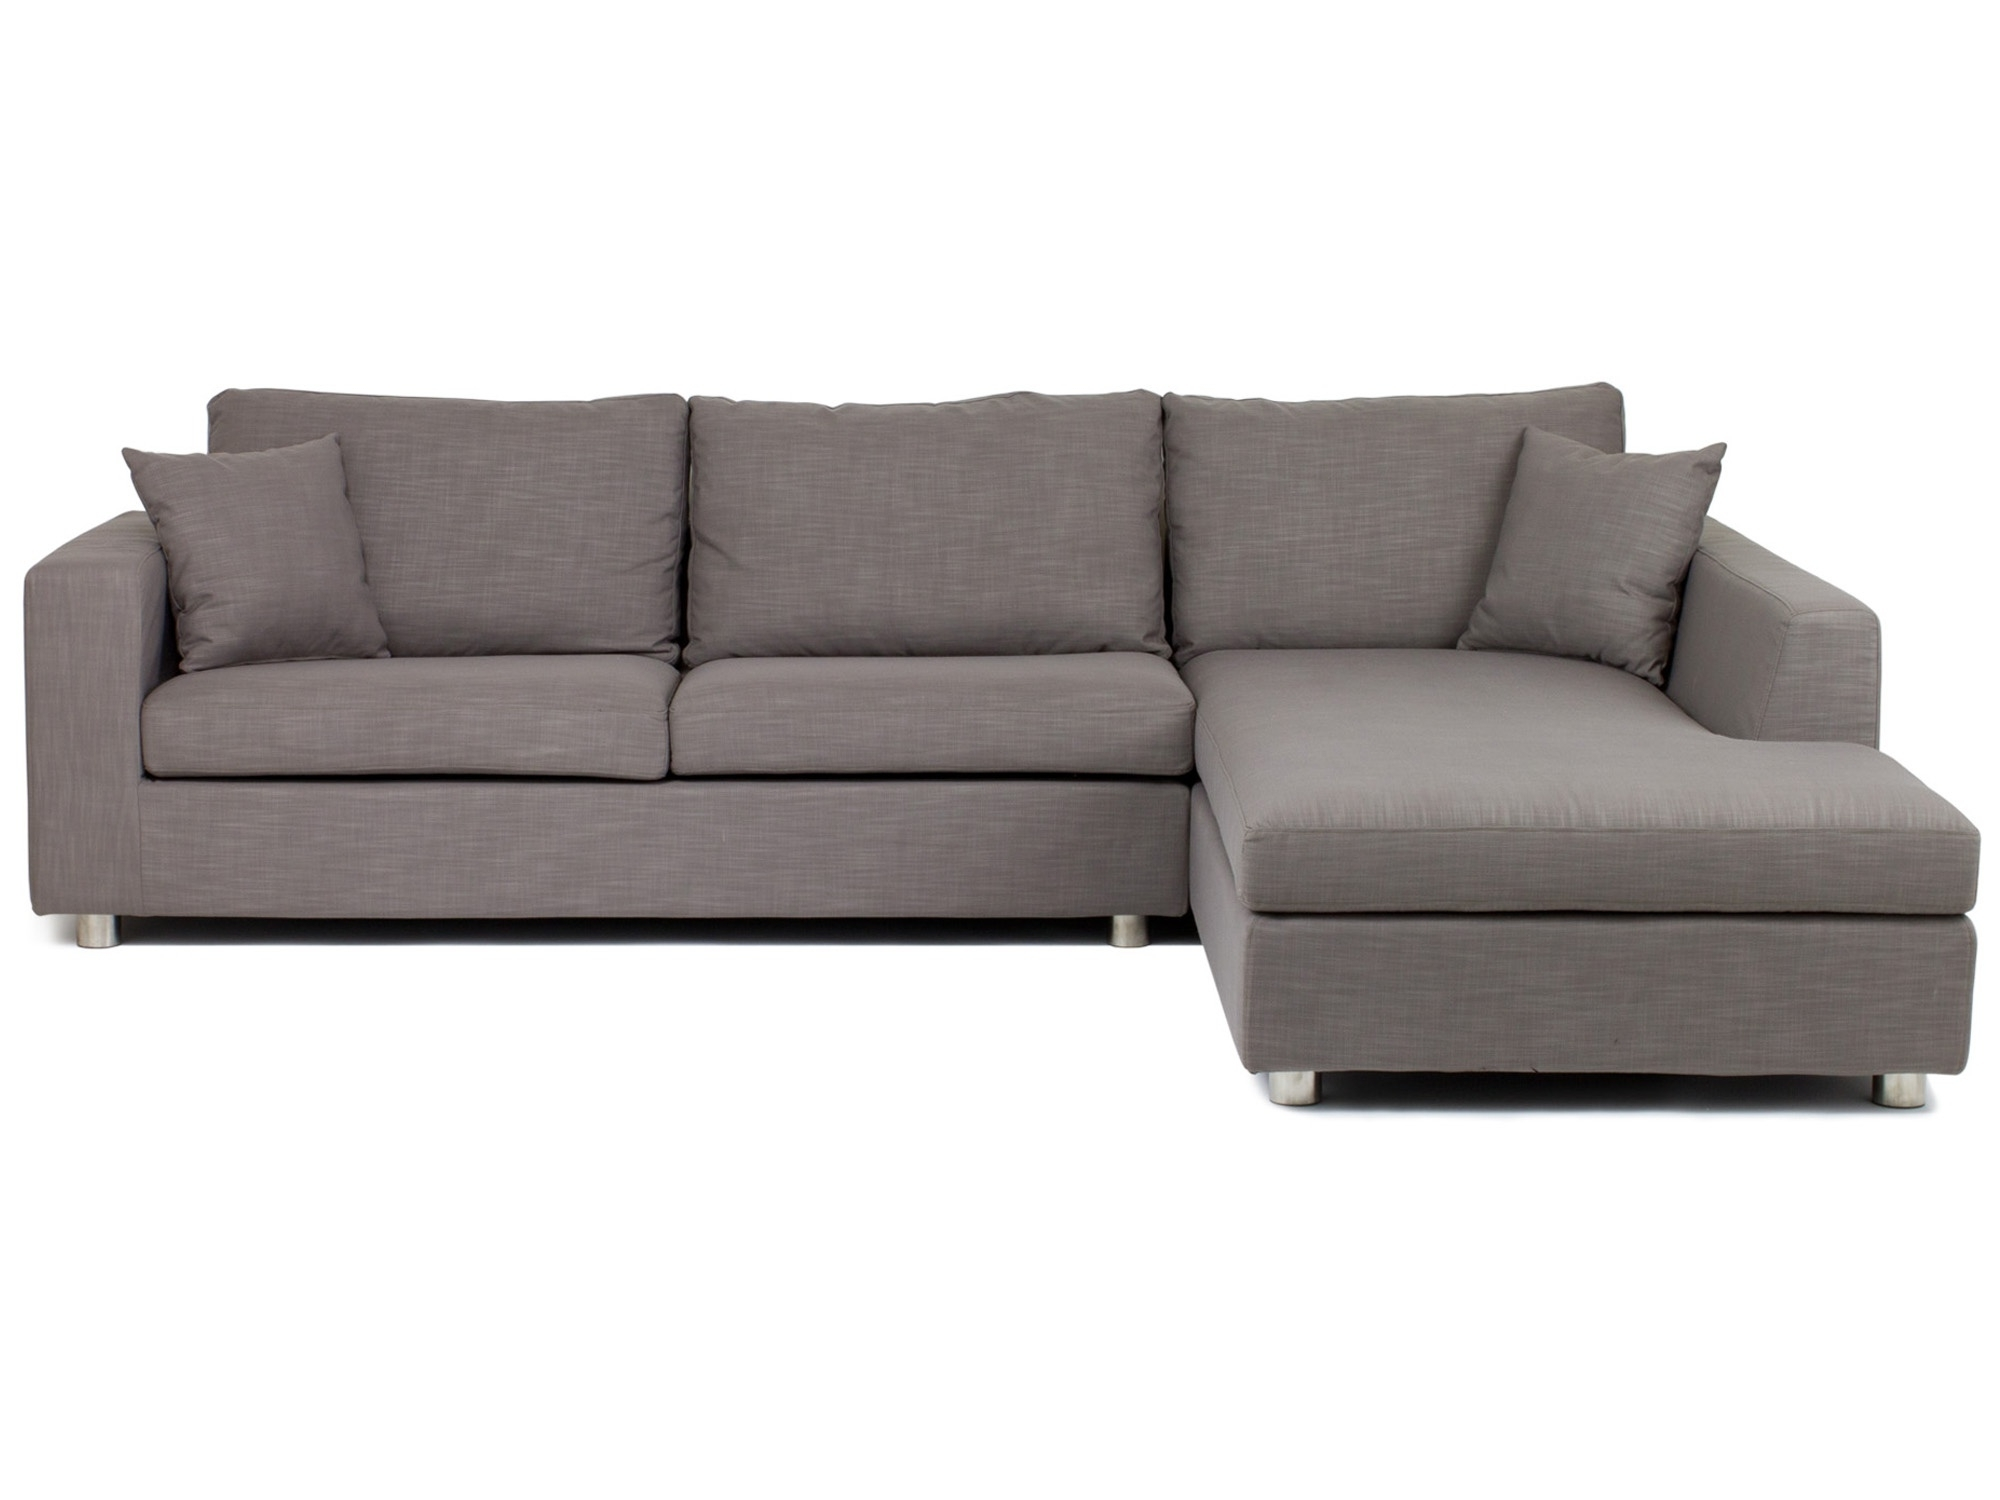 Hideabed With Regard To Sectional Sleeper Sofas With Chaise (View 5 of 15)